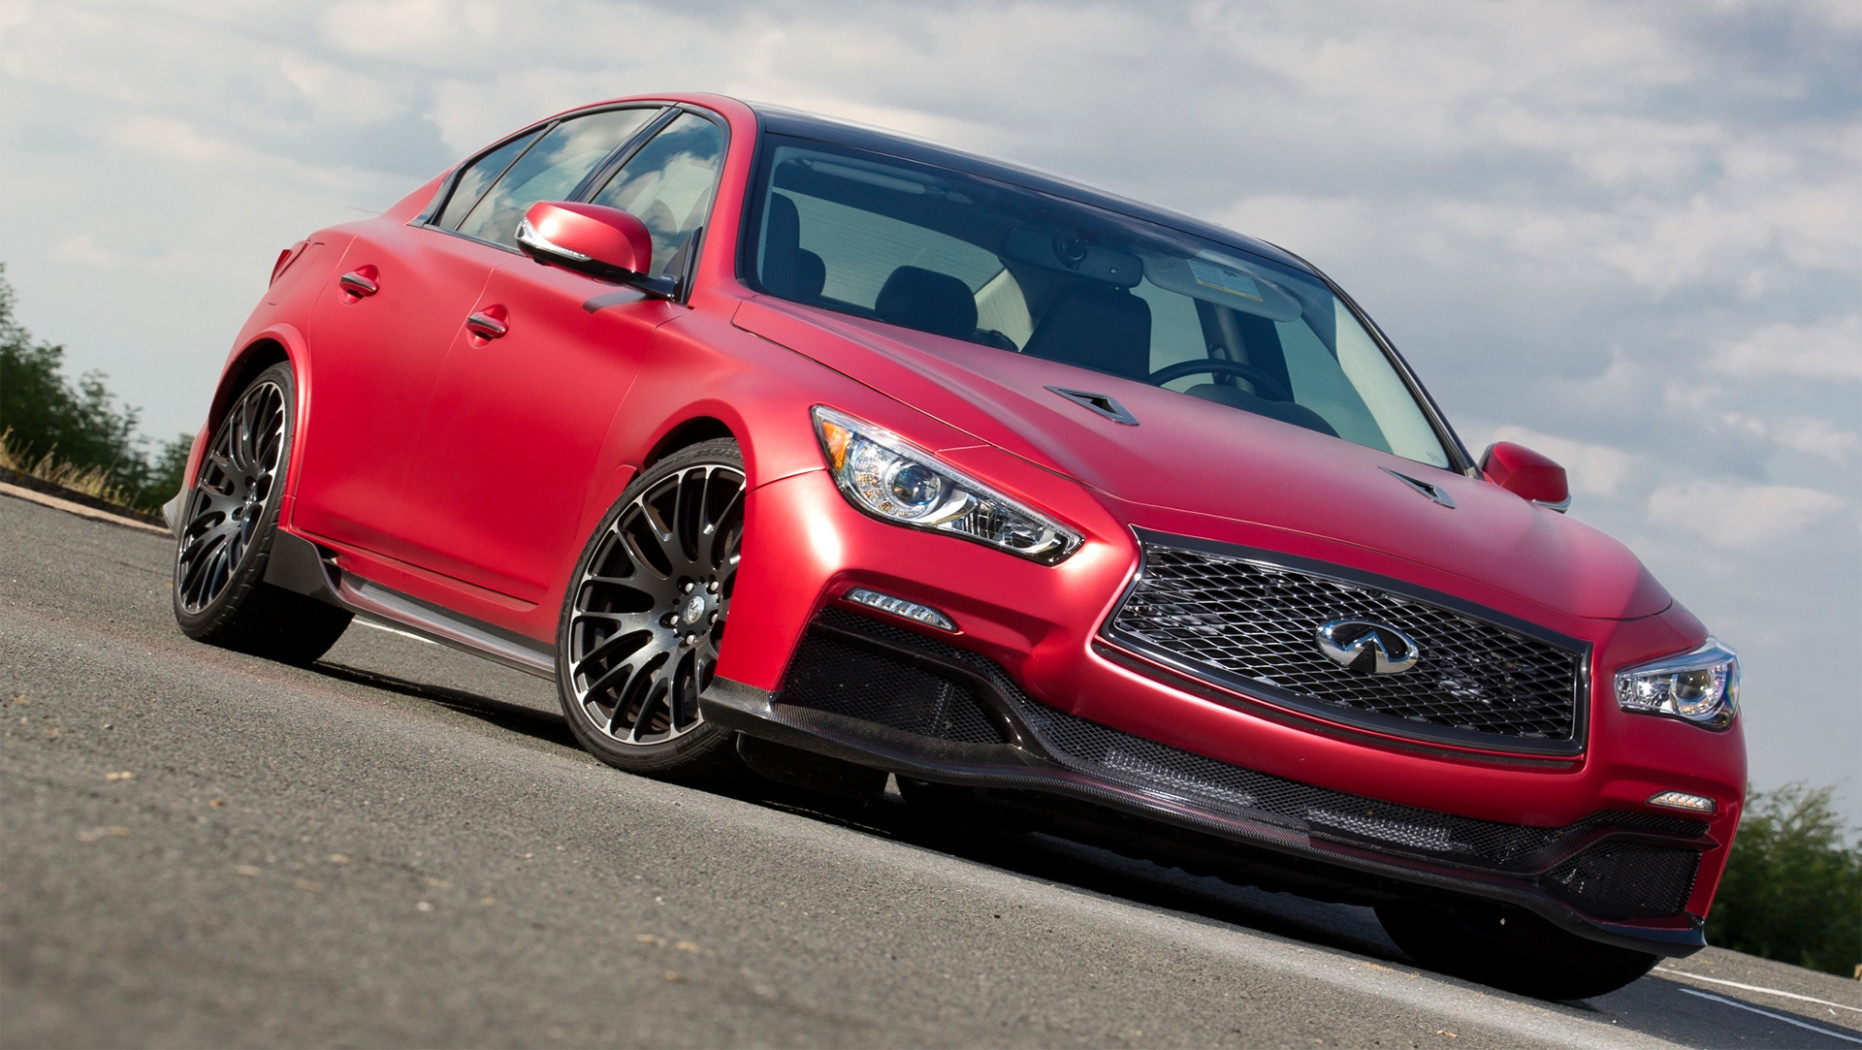 Redesign and Concept 2022 Infiniti Q50 Coupe Eau Rouge